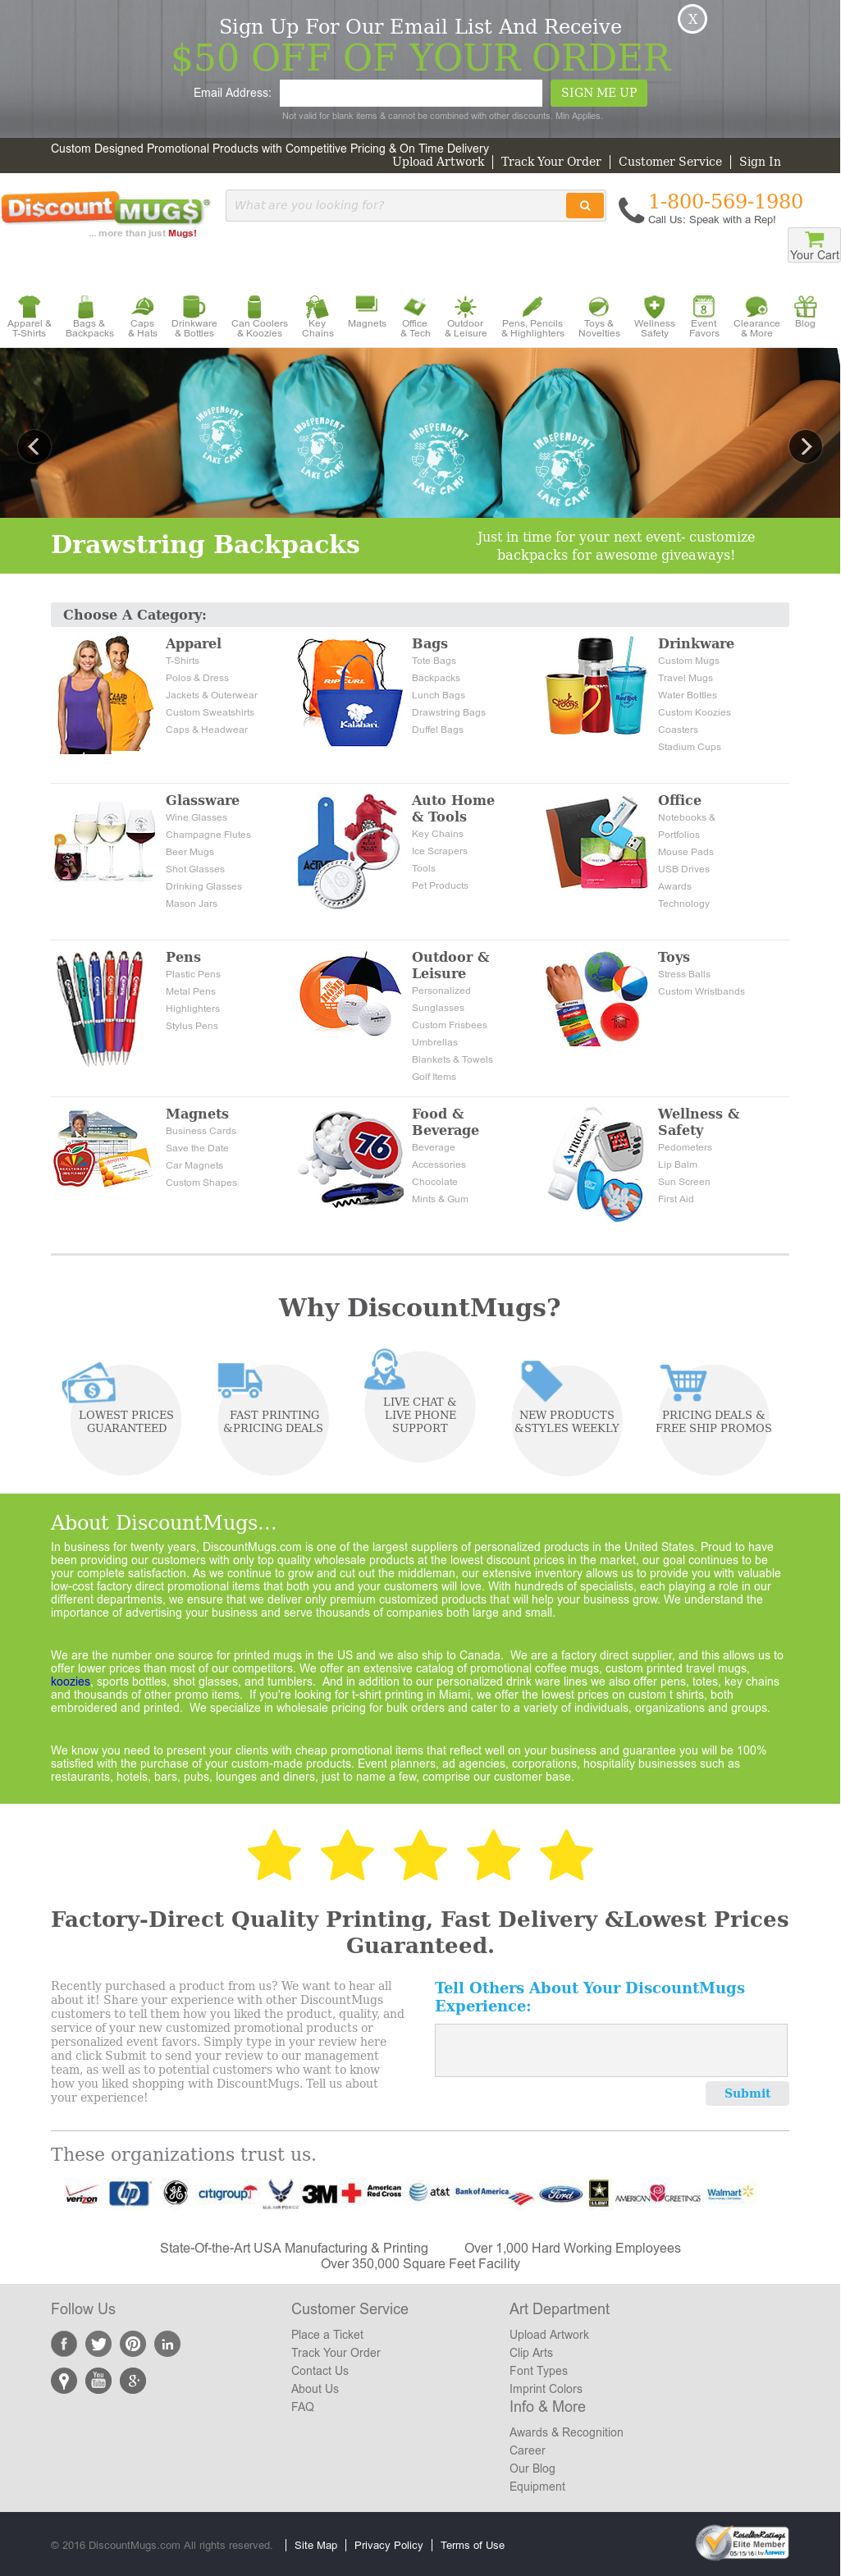 DiscountMugs Competitors, Revenue and Employees - Owler